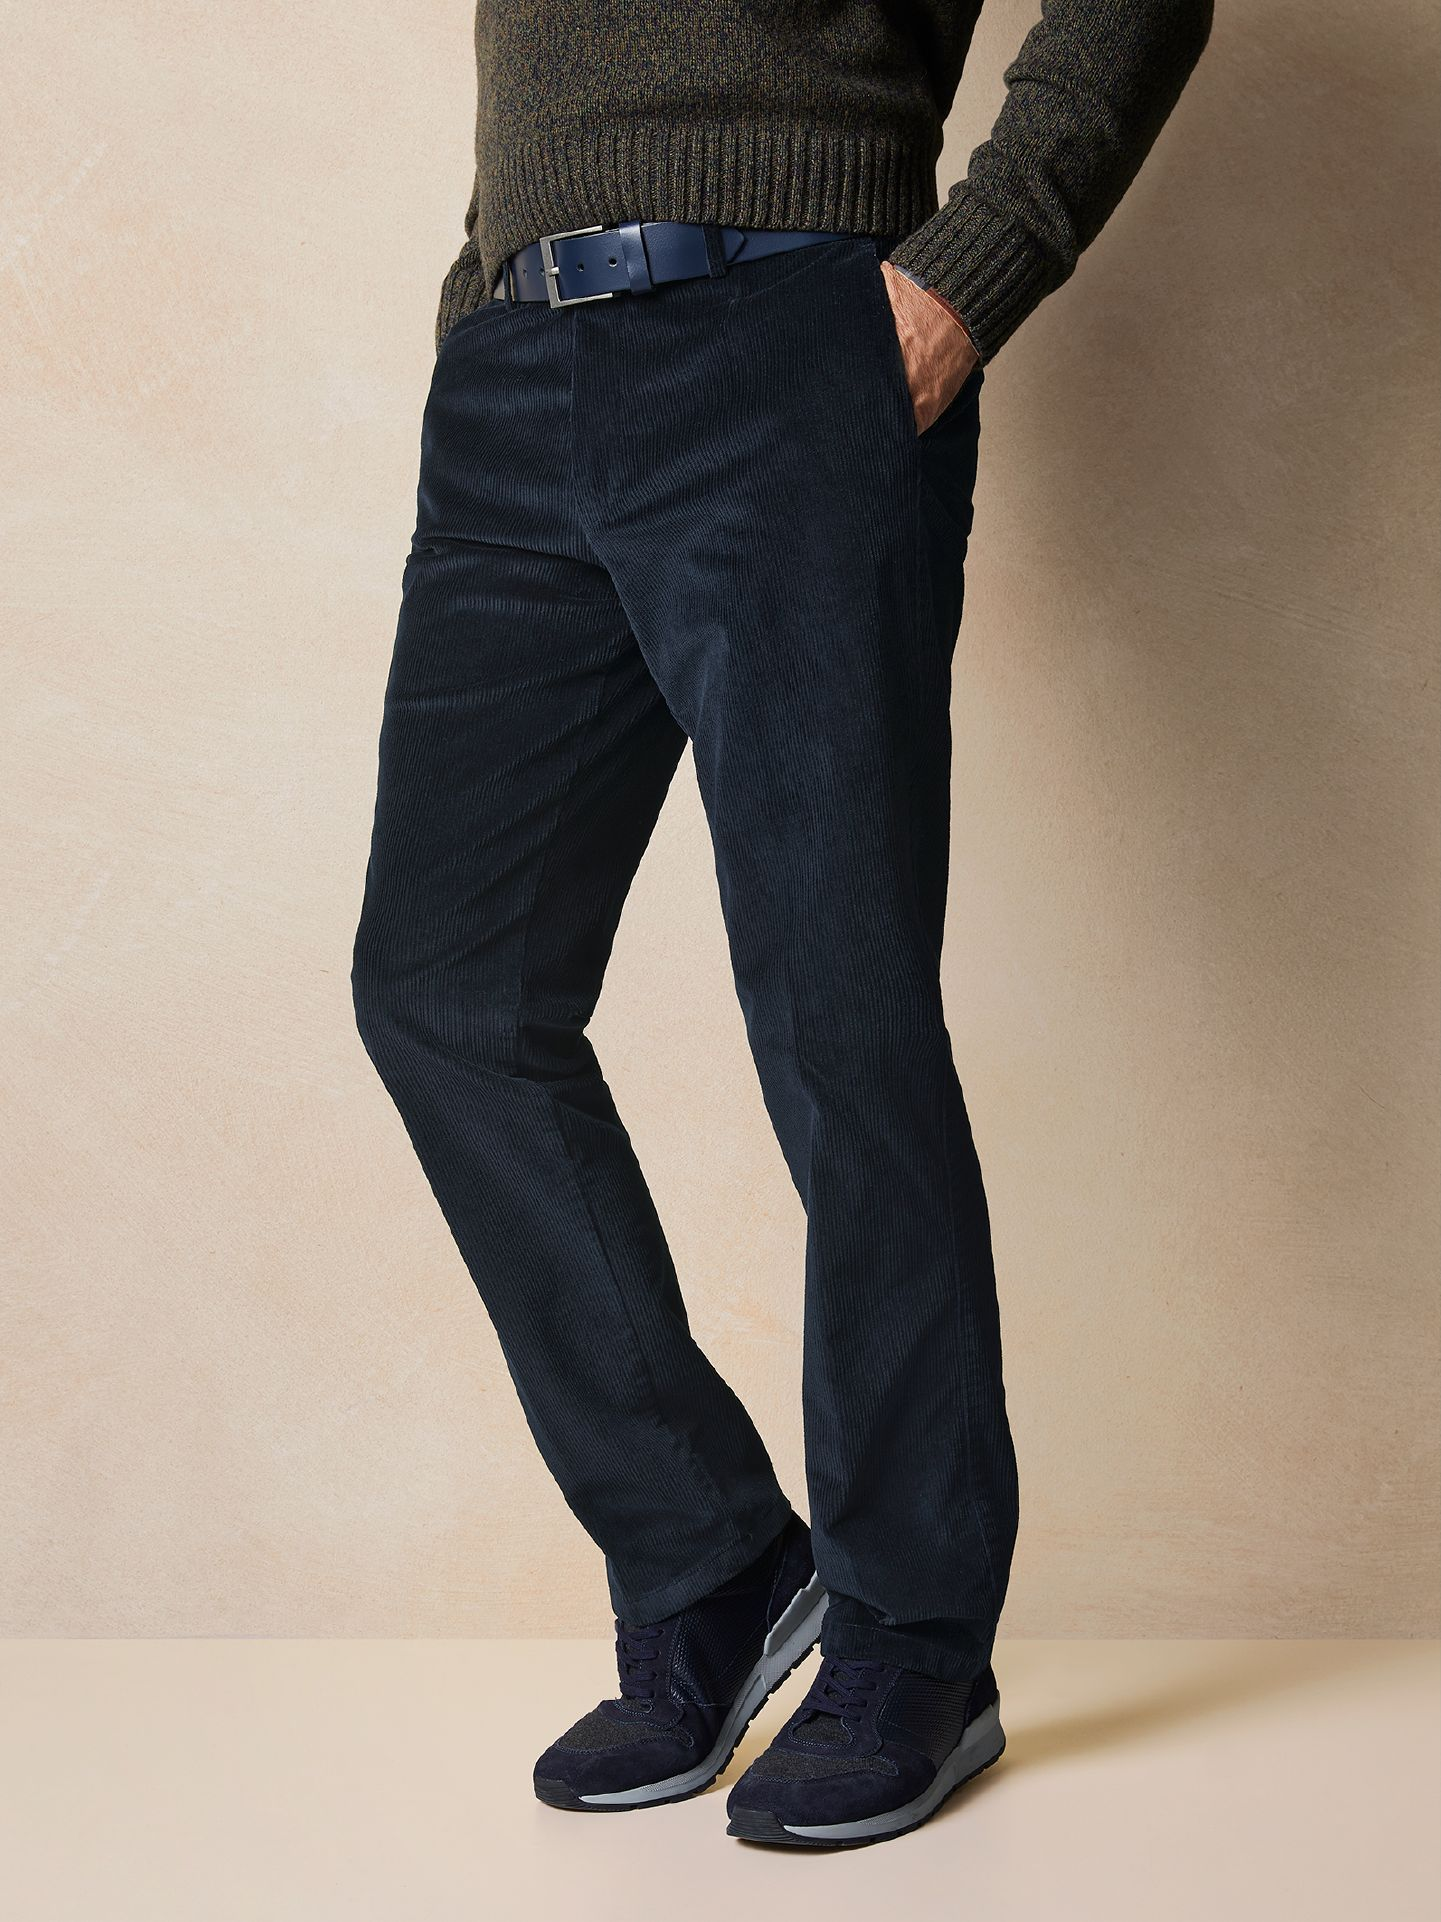 Image of 600 Rippen Cord Chino